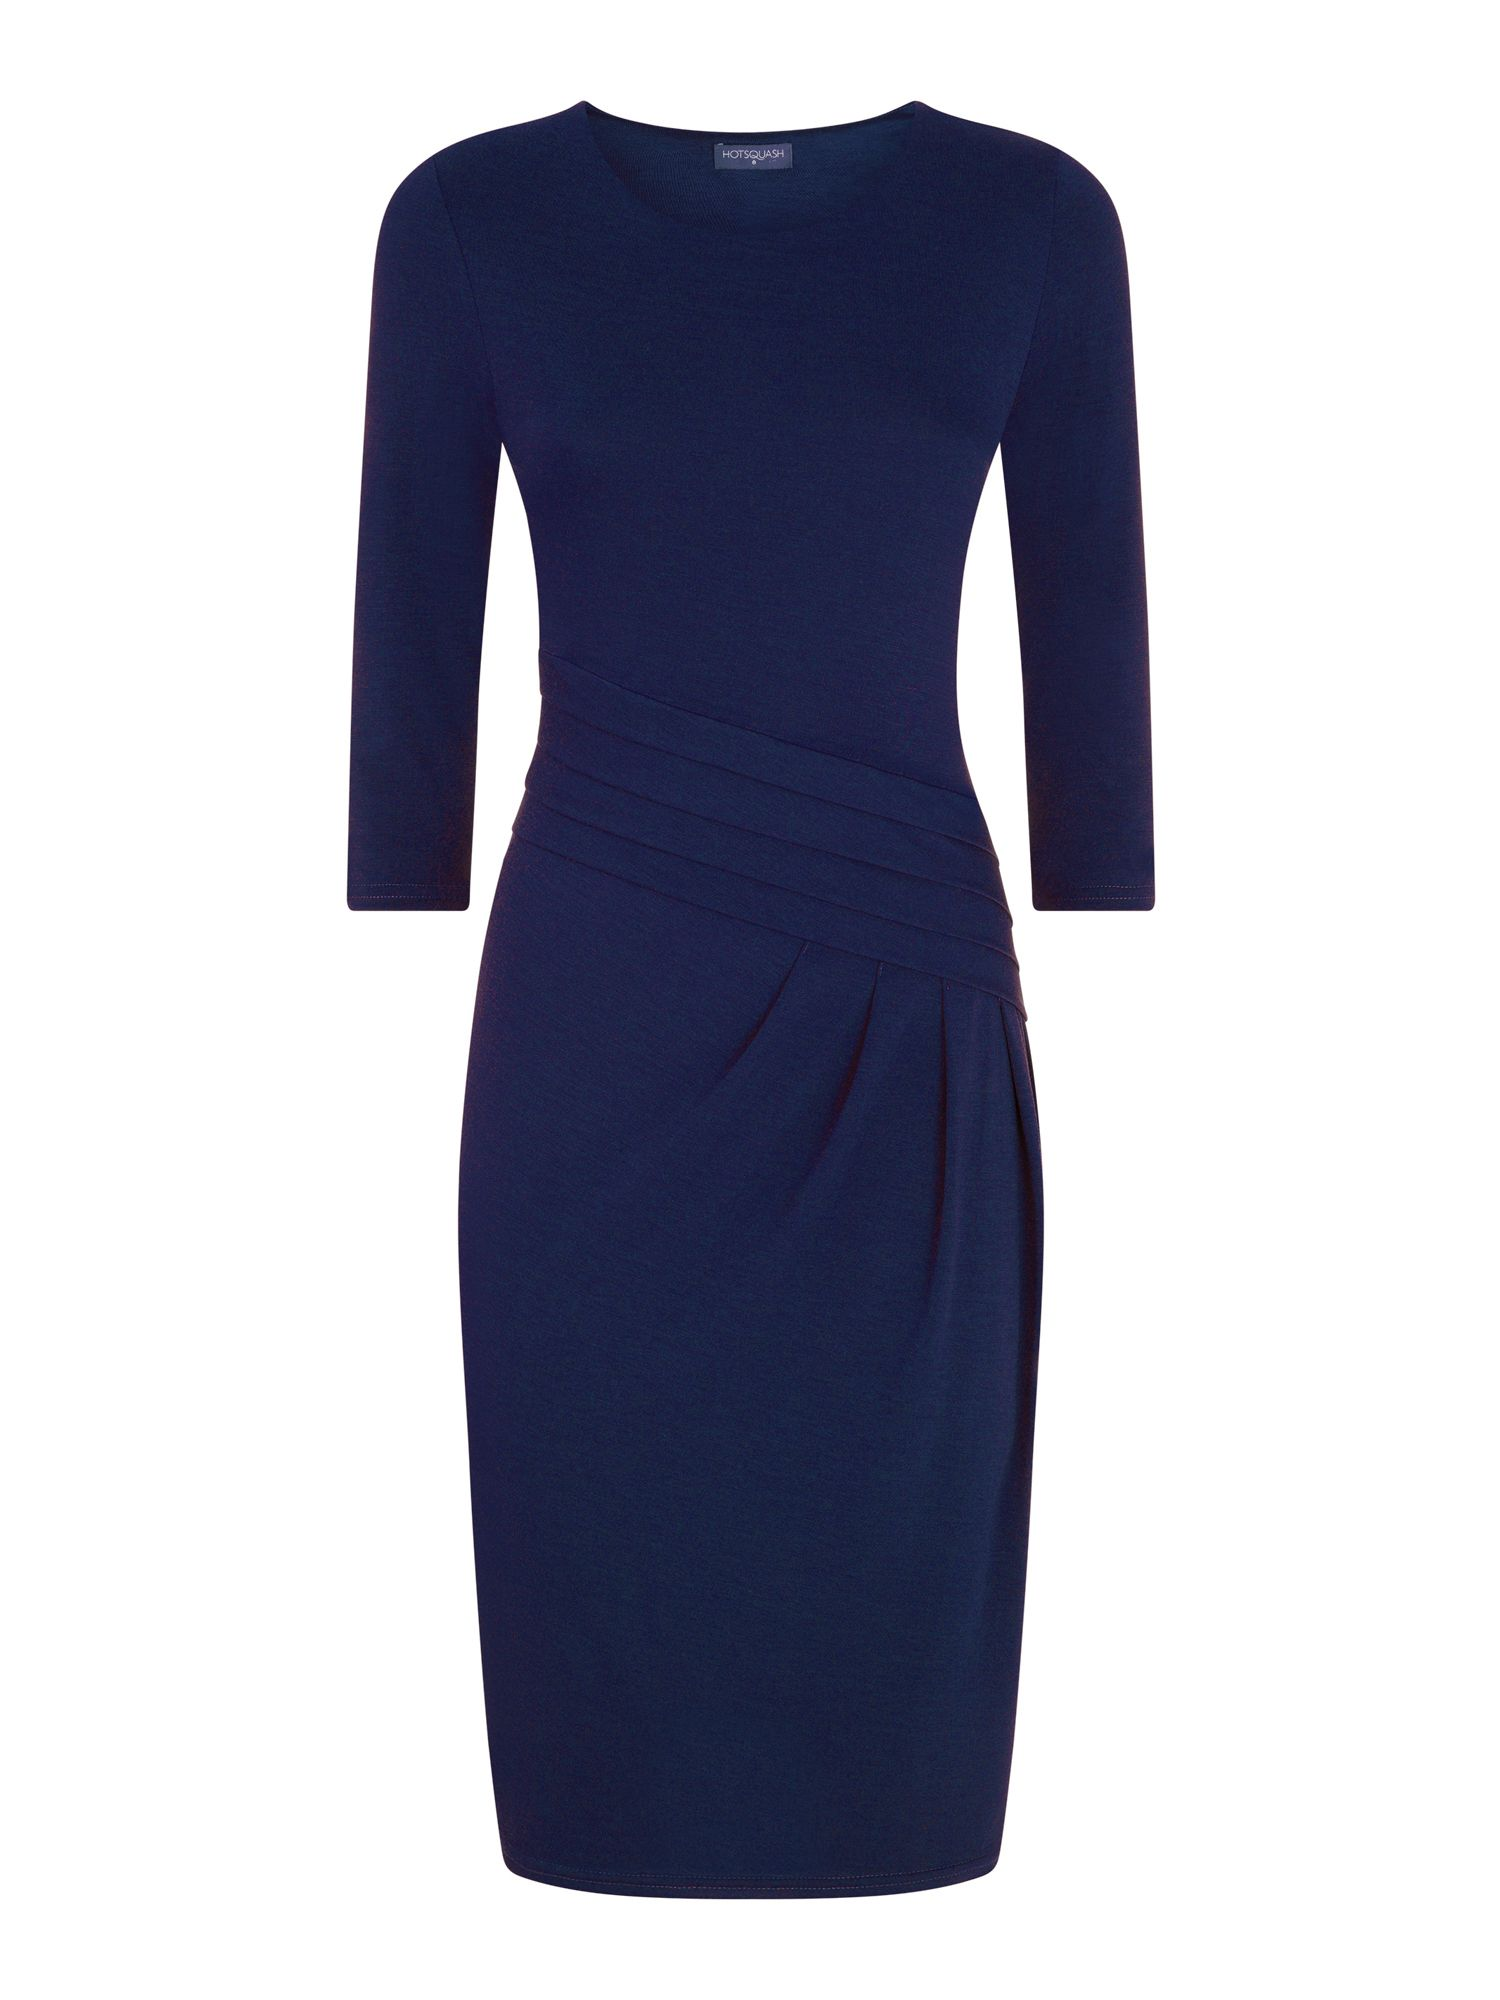 HotSquash Long Sleeved Knee length Dress, Midnight